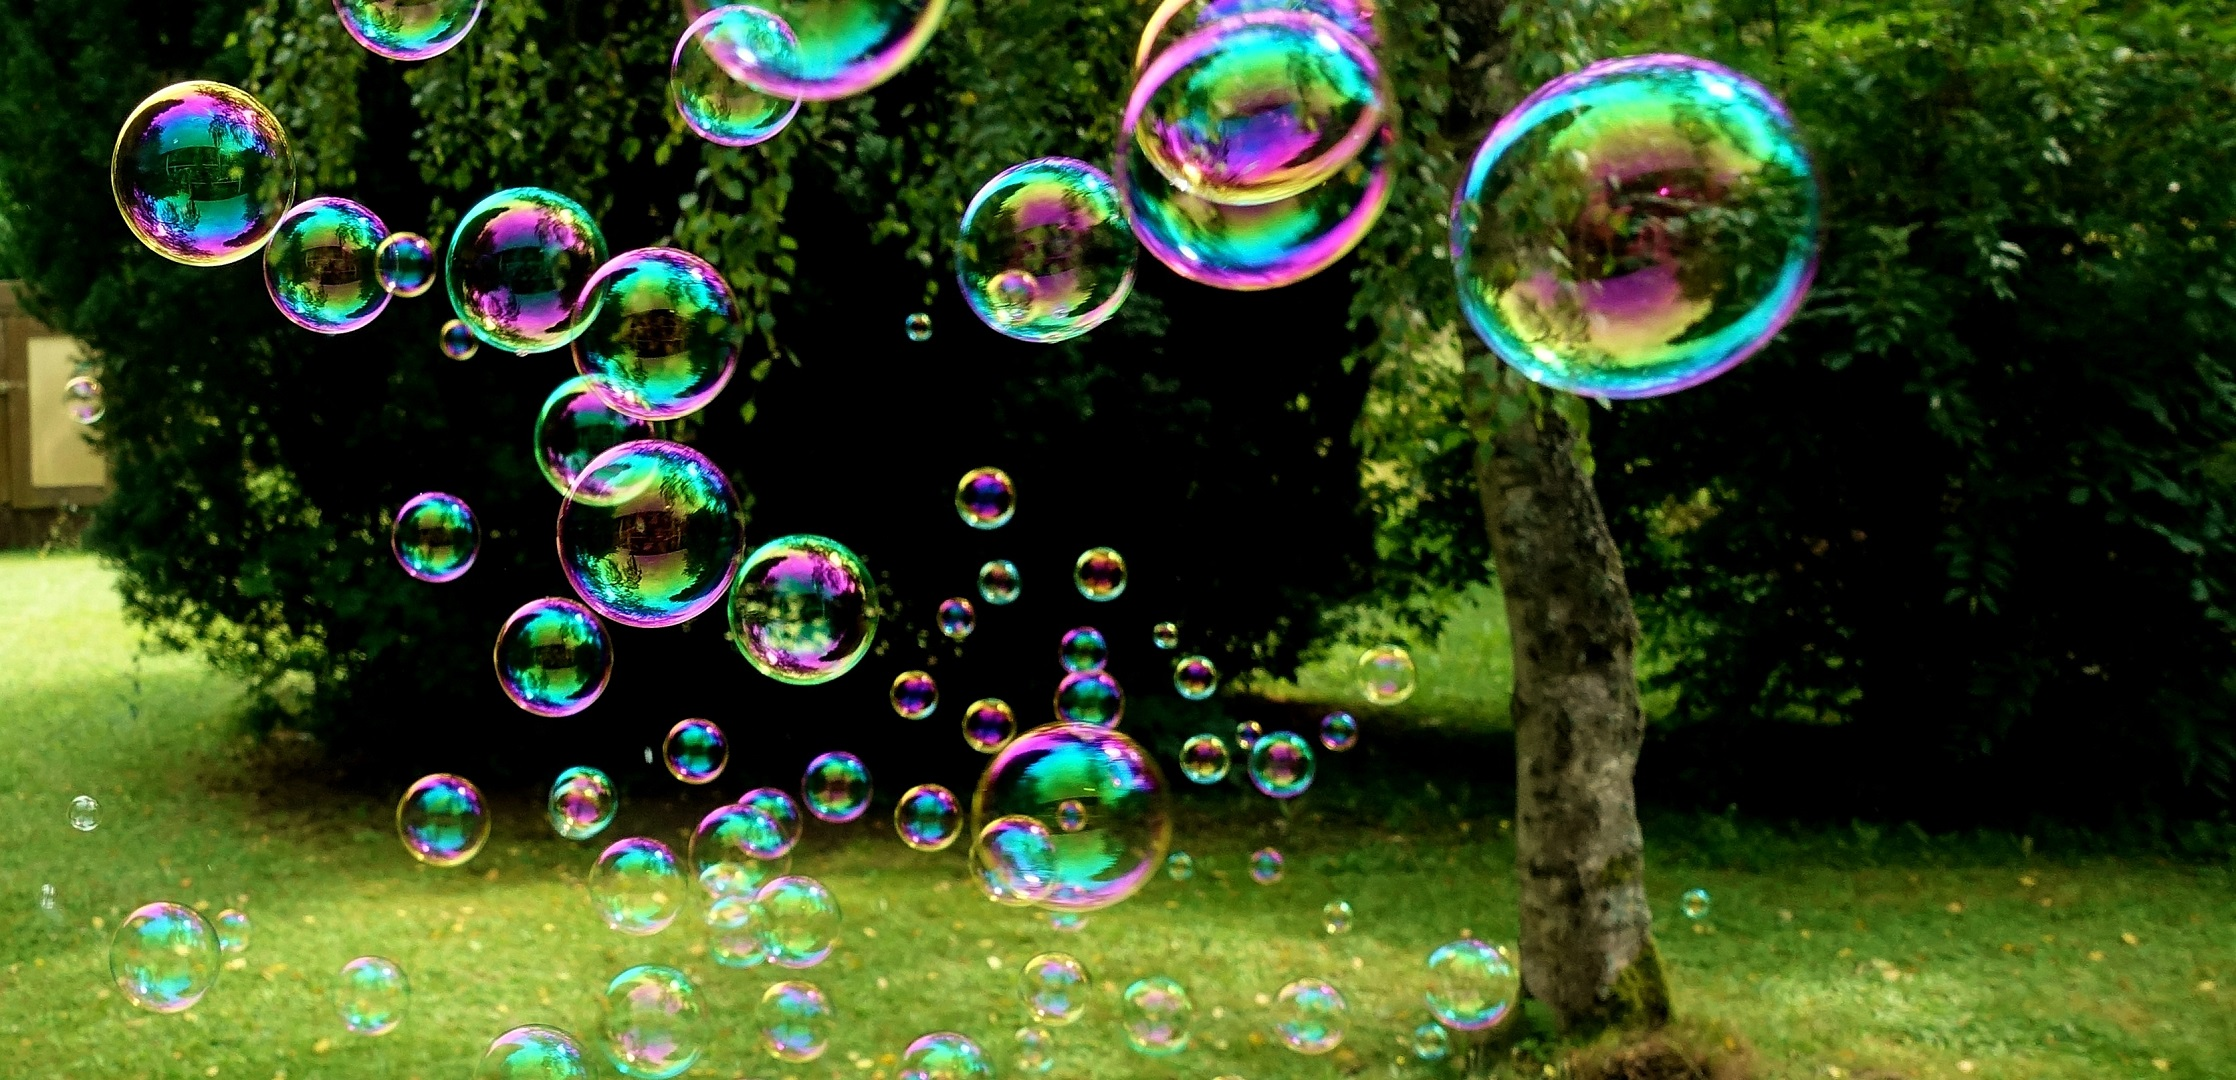 soap bubbles hd wallpaper